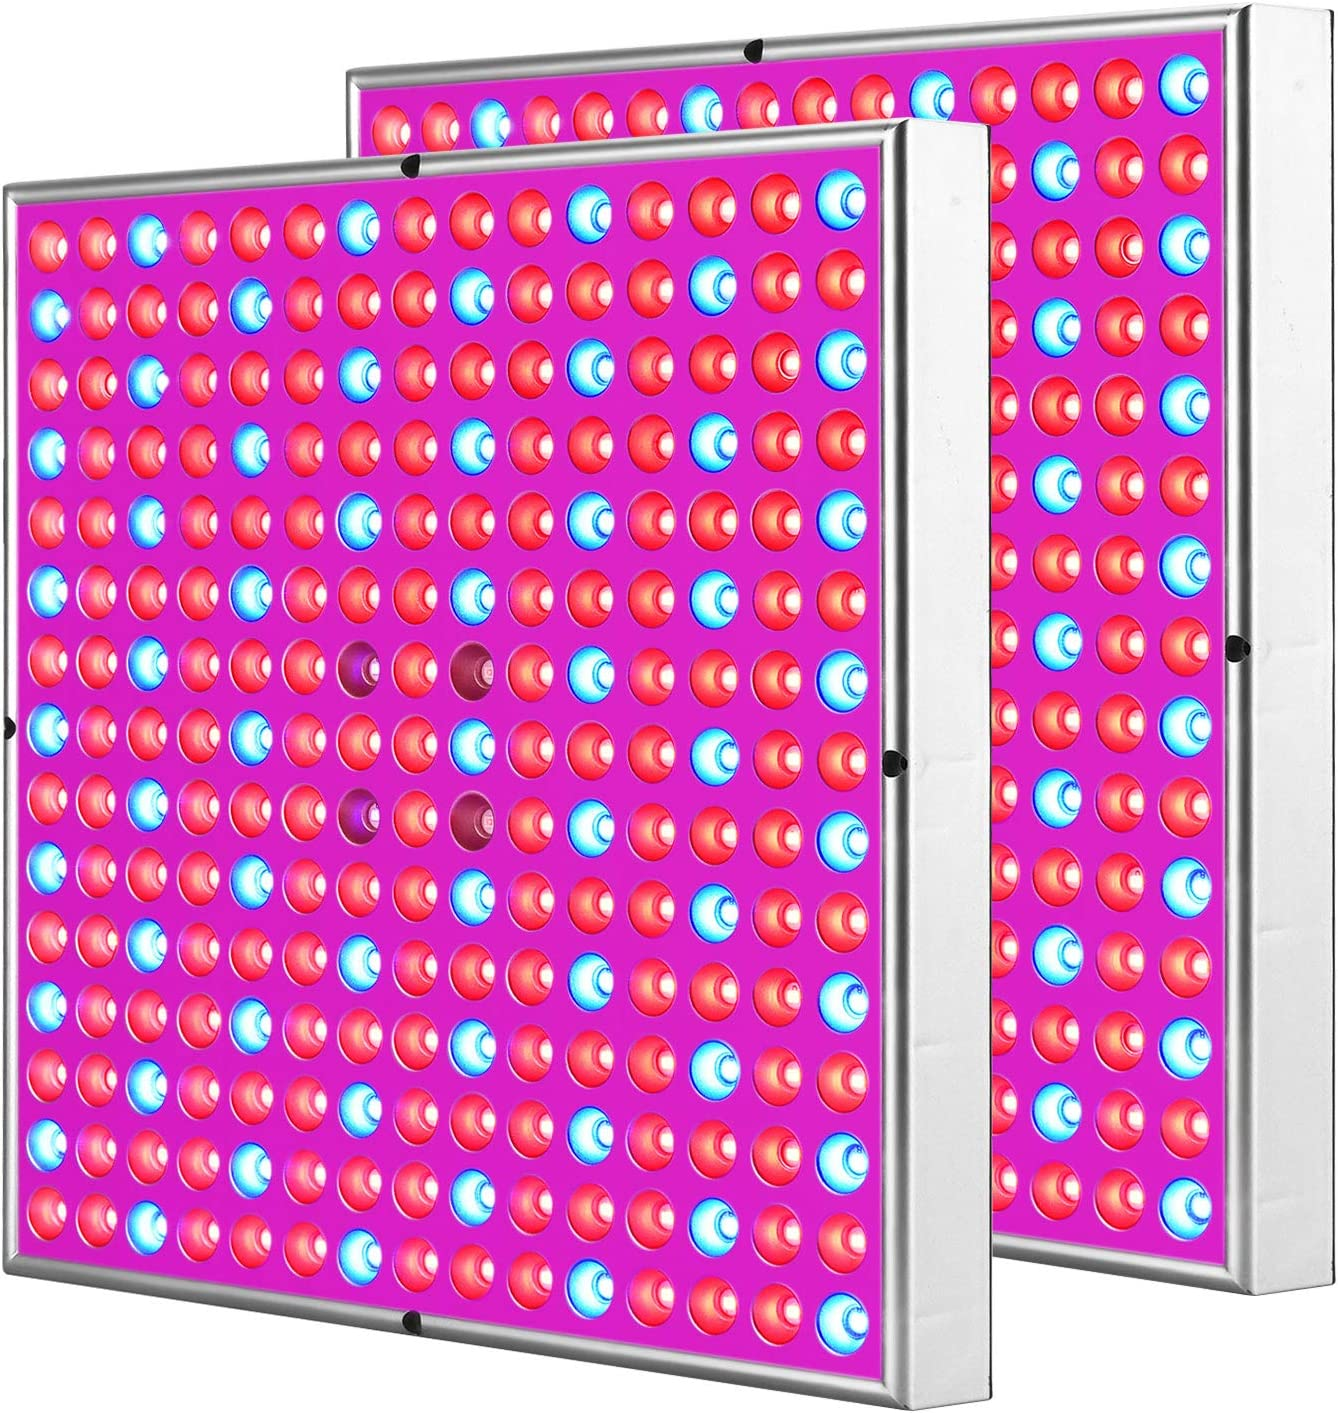 2 Pack Grow Light Panel Led Grow Lights for Indoor Plants Lights Hanging Red Blue IR Plant Lamp for Hydroponic Succulents Greenhouse Herbs Garden 2×225LEDs 2×45W High Power